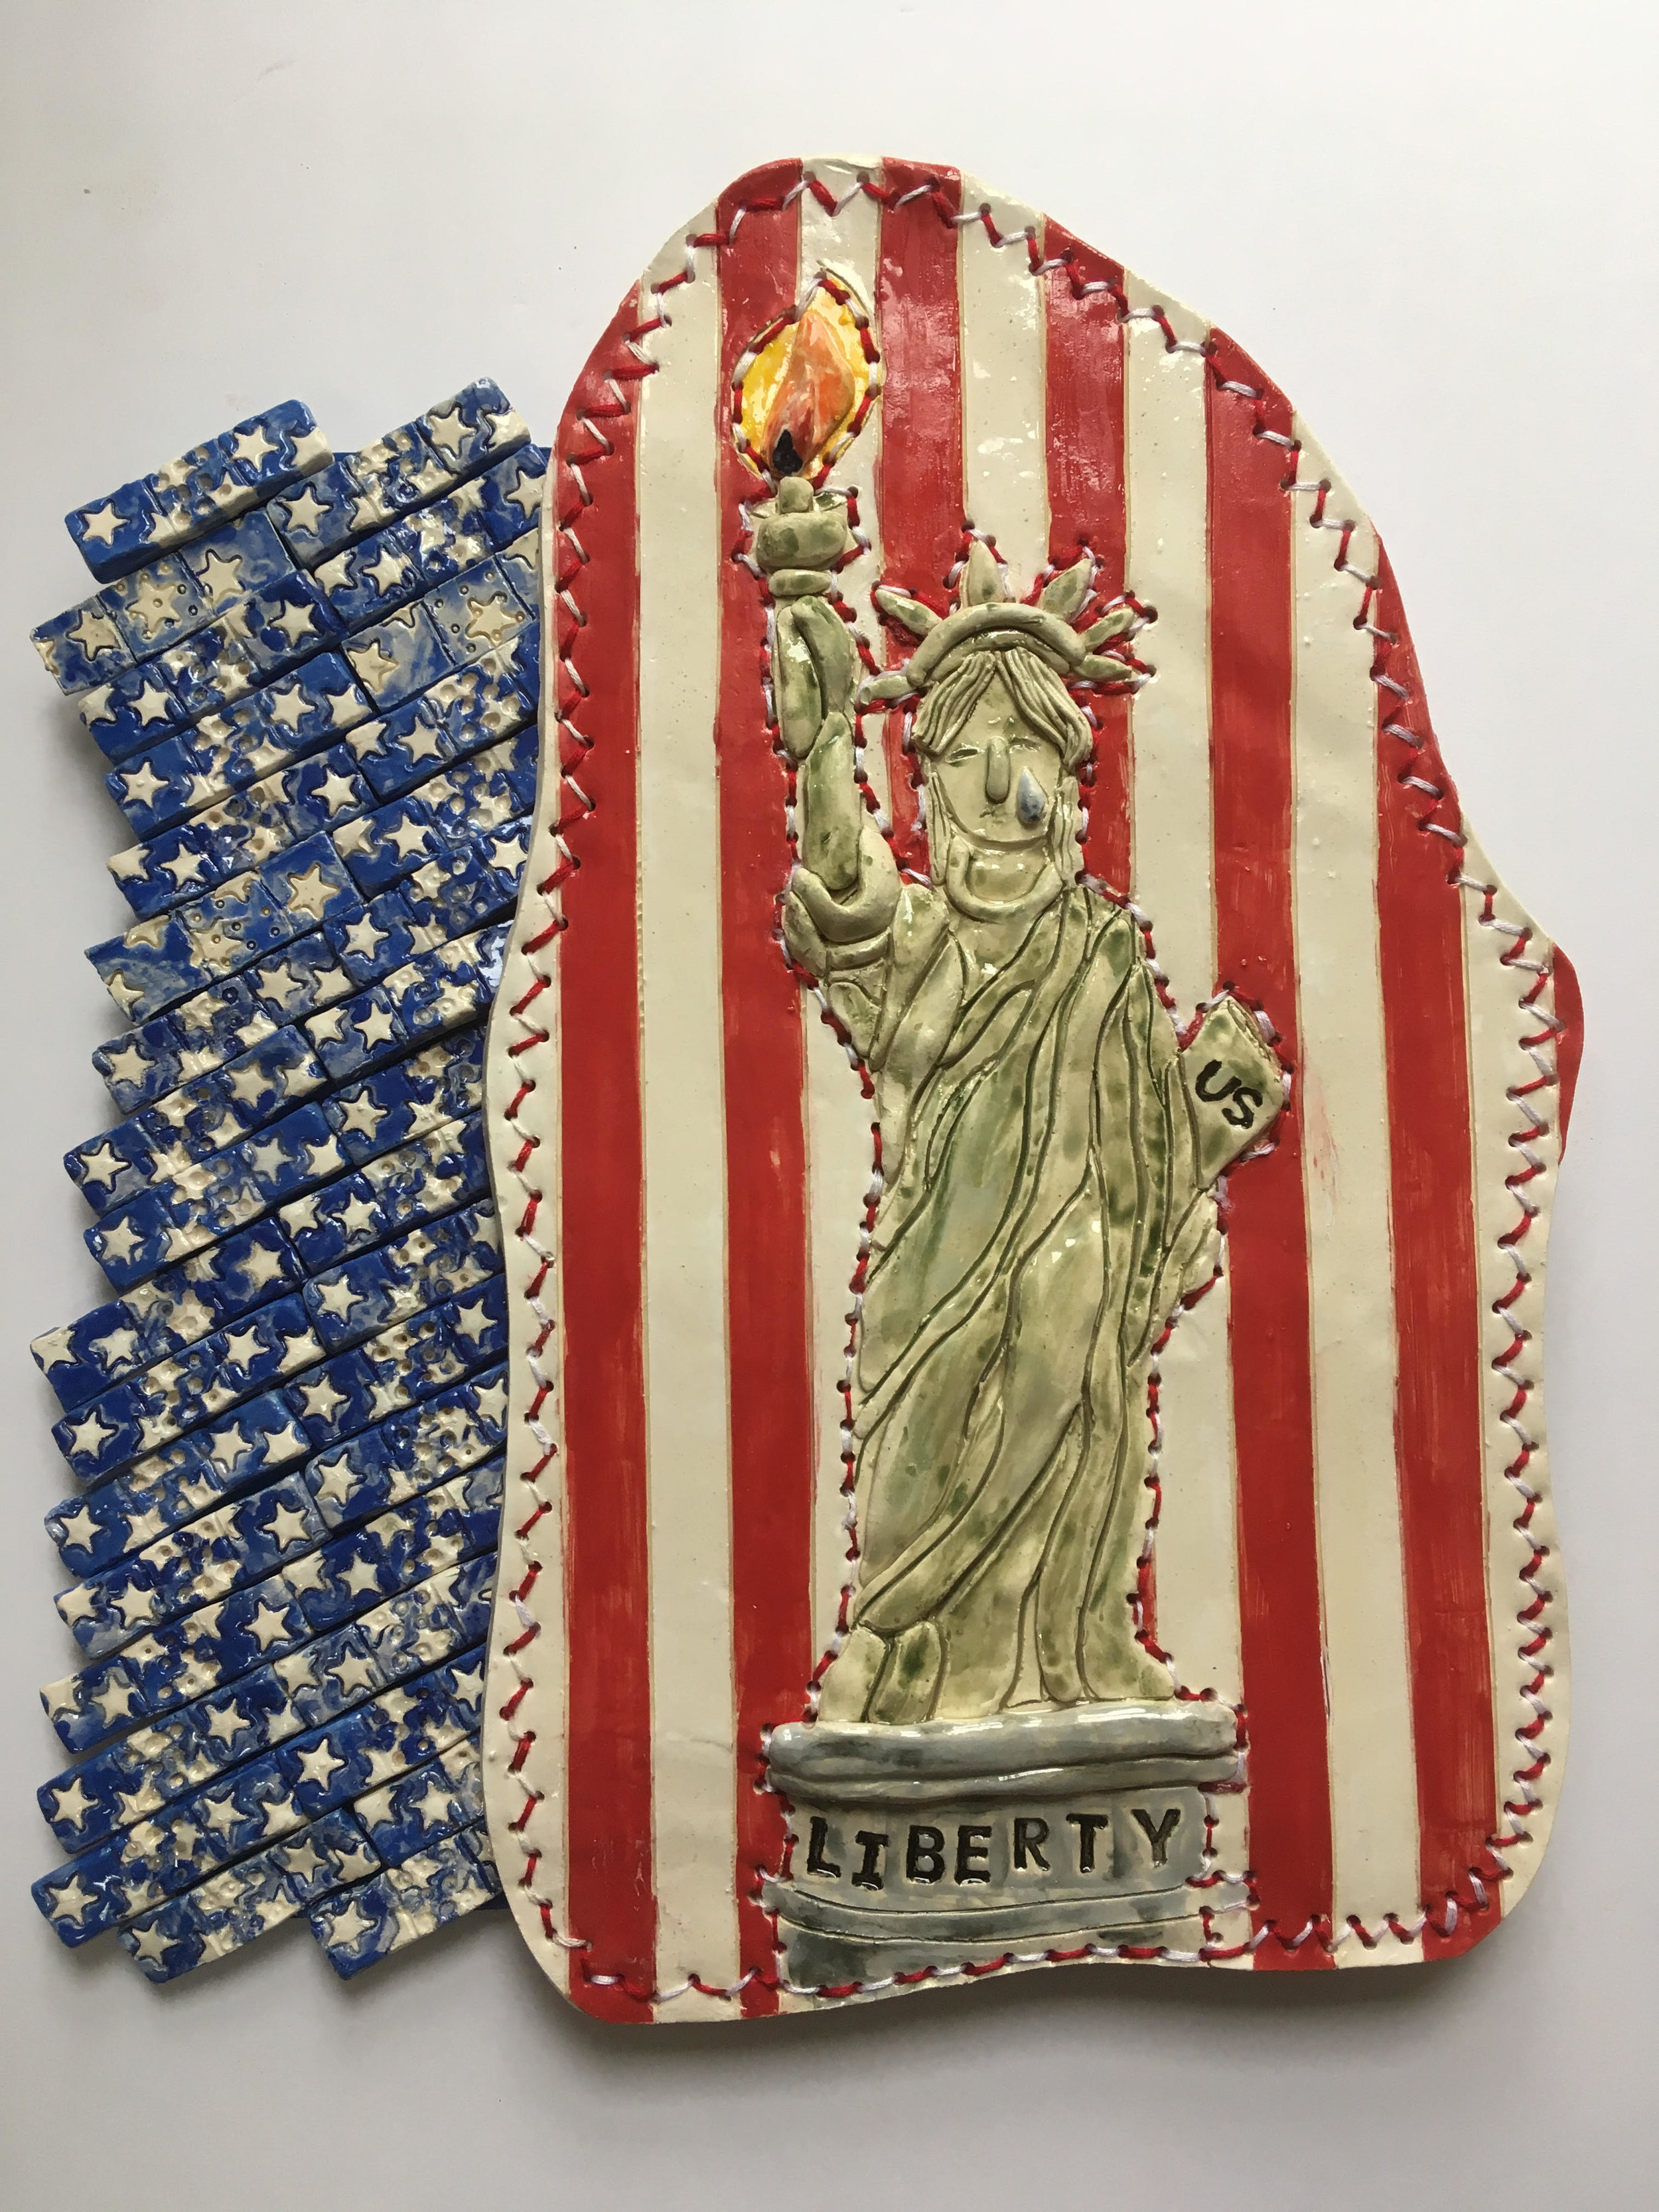 GalleryOonH-Kasse Andrews Weller-Statue of Liberty Weeps-2016-Ceramic-14x17-650.jpg